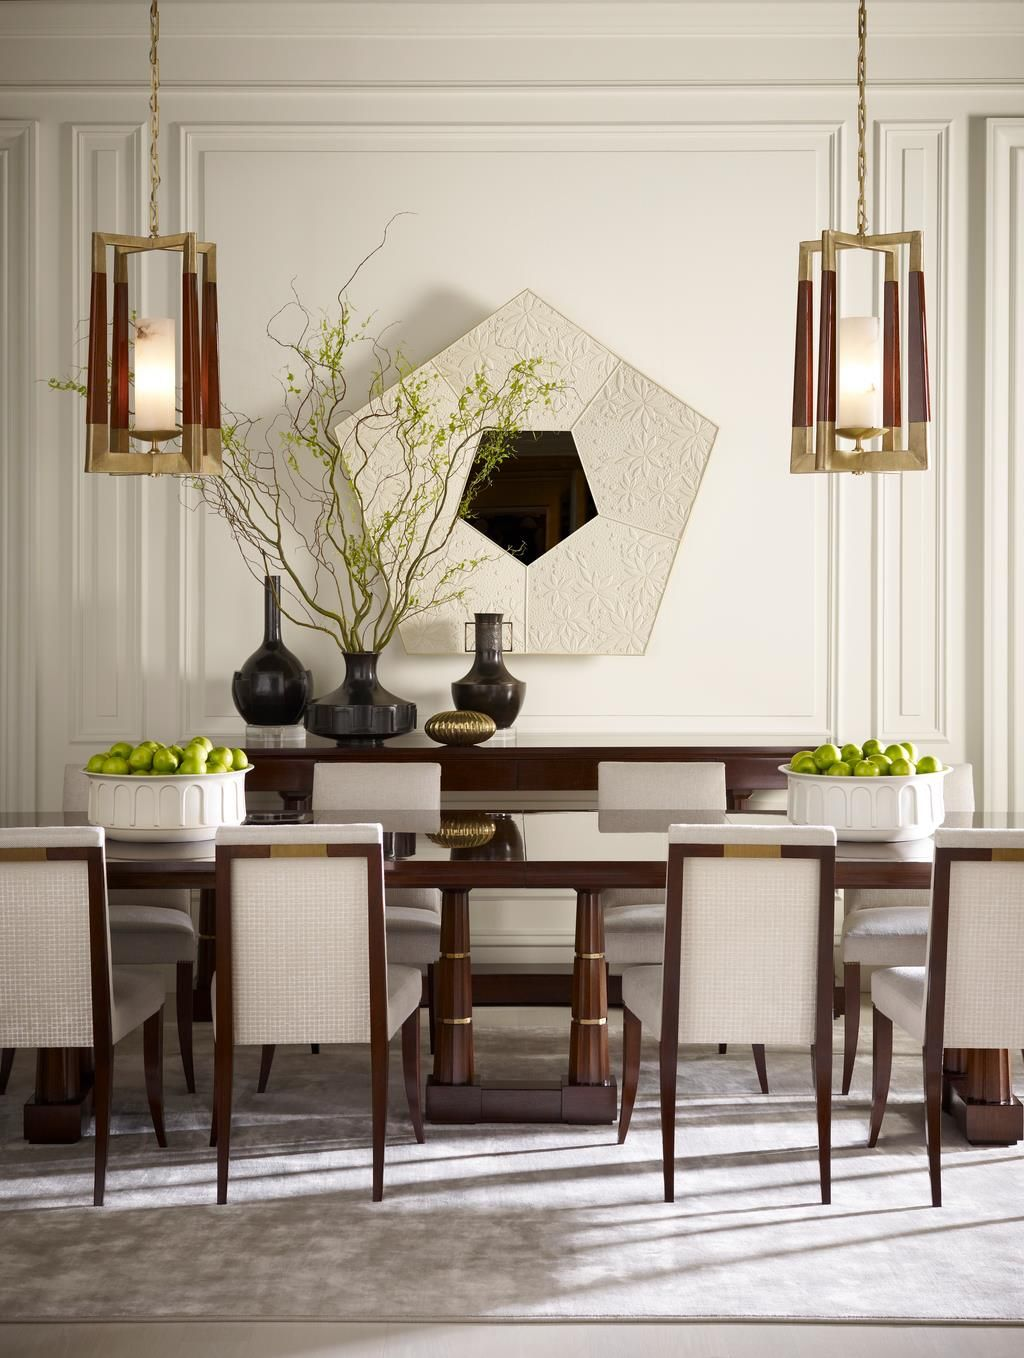 Love The Balance And Symmetry This Space Hasthomas Pheasant Amazing Modern Dining Room Design Decorating Inspiration